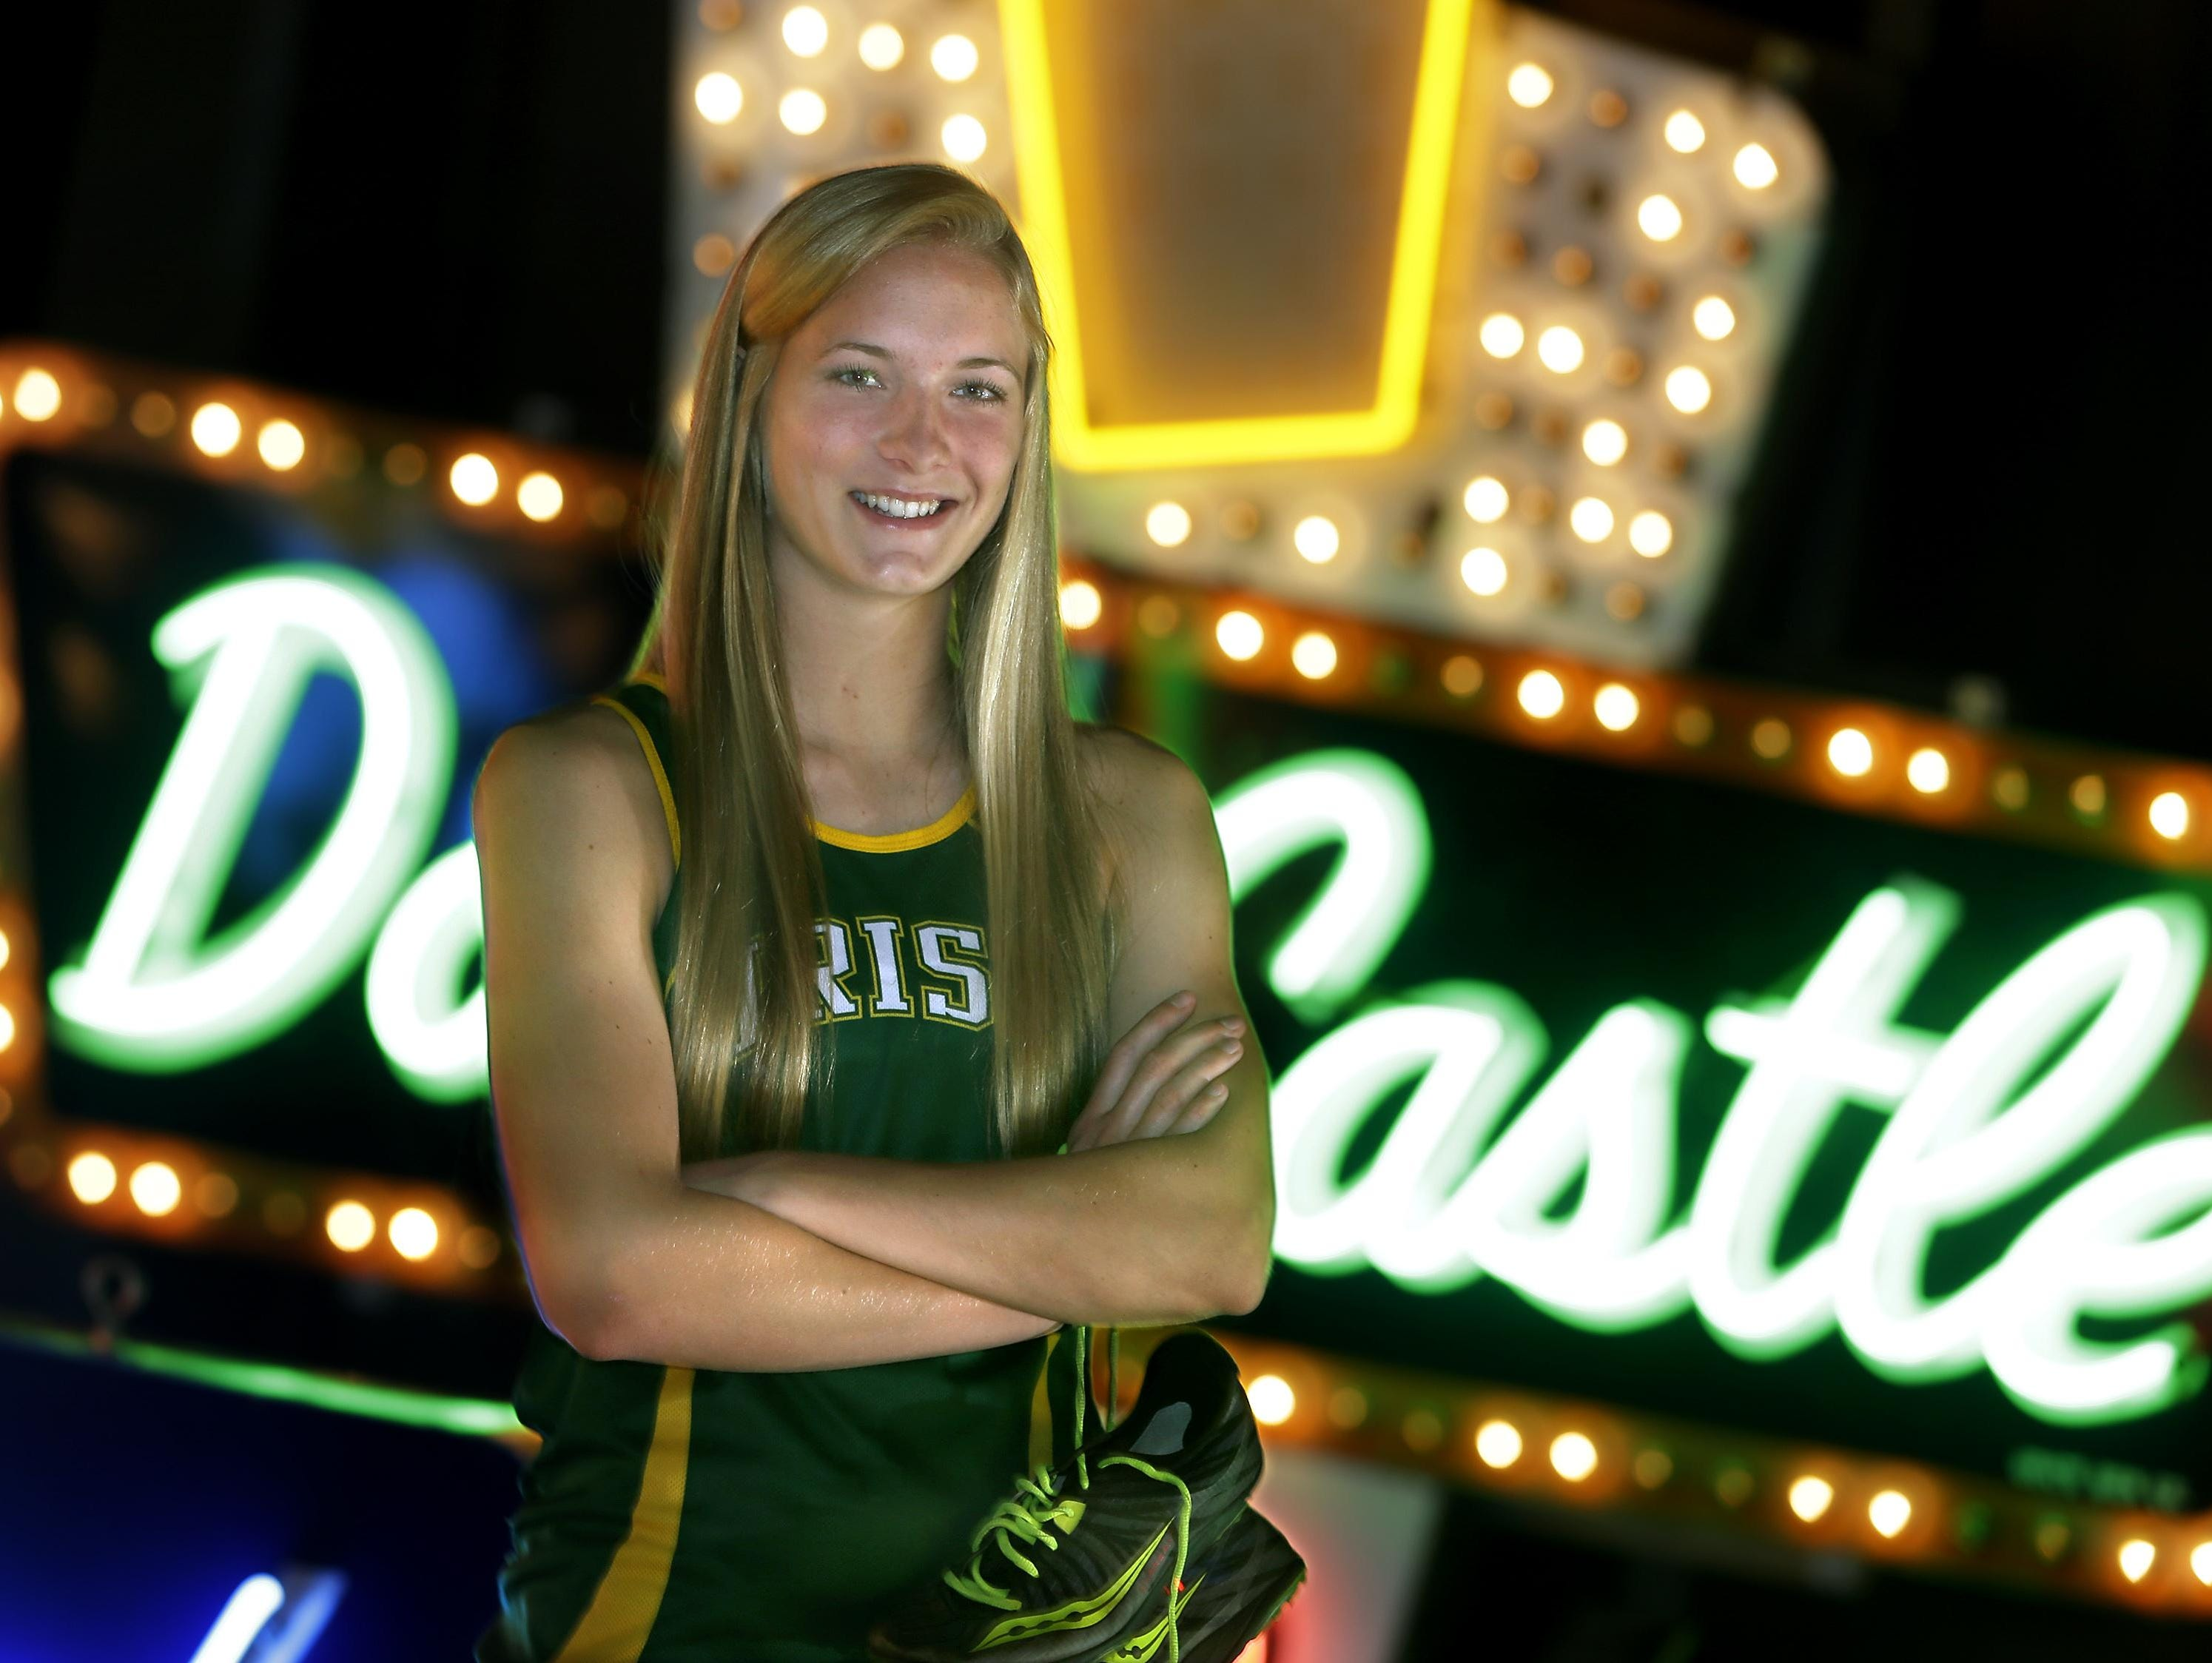 Post-Crescent Media's girls' track athlete of the year is Freedom High School's Lauren Peters. The photo was taken at the History Museum at the Castle in Appleton.